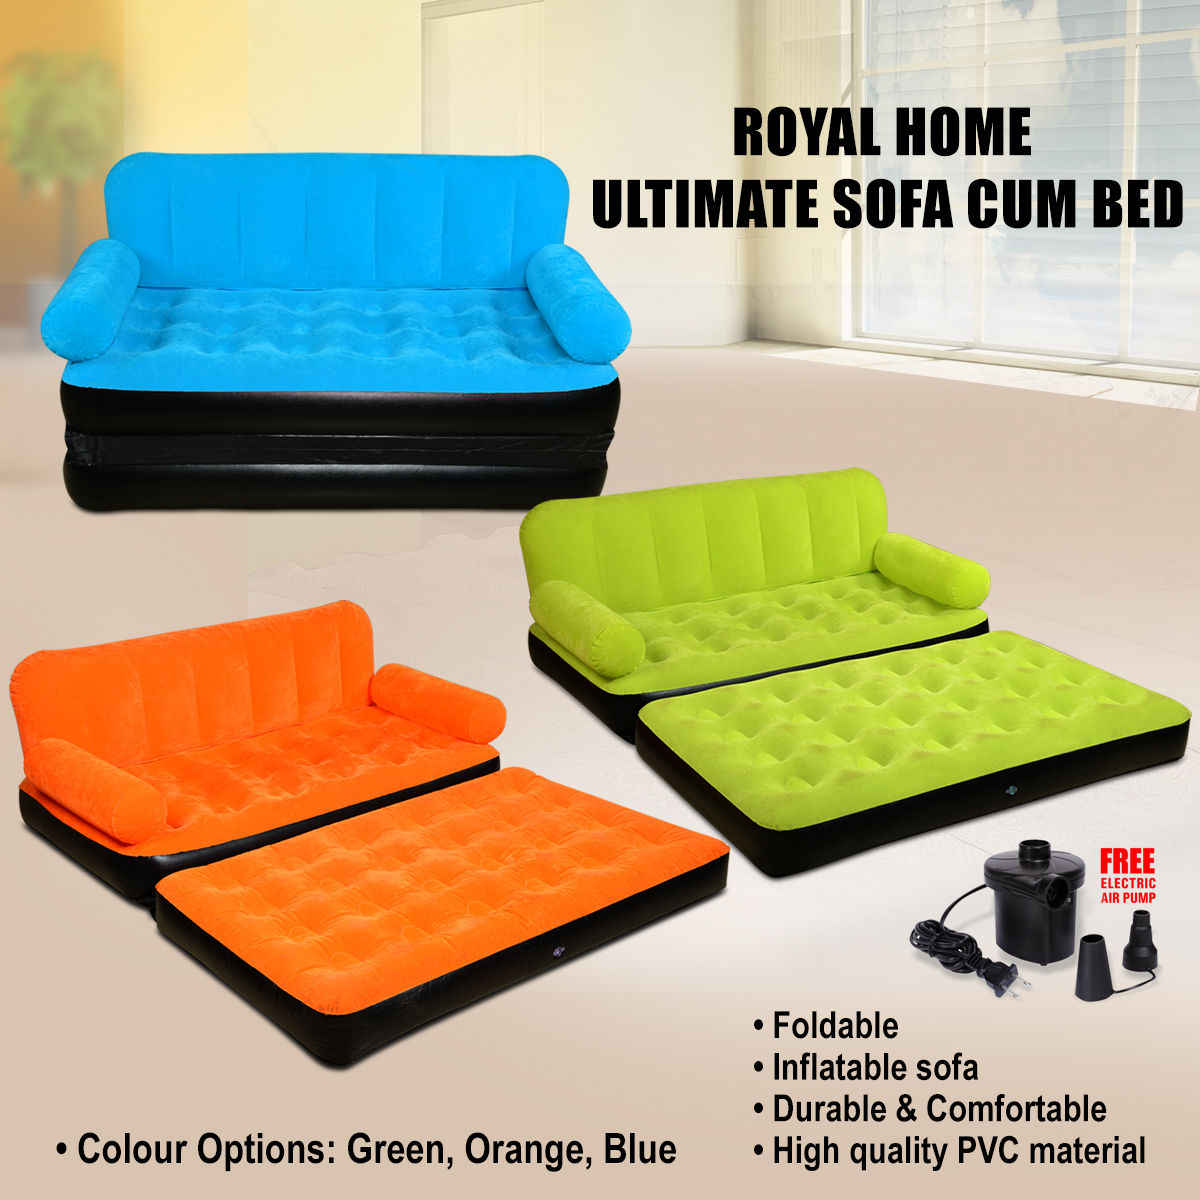 Buy Sofa Bed Online Buy Royal Home Ultimate Sofa Cum Bed Online At Best Price